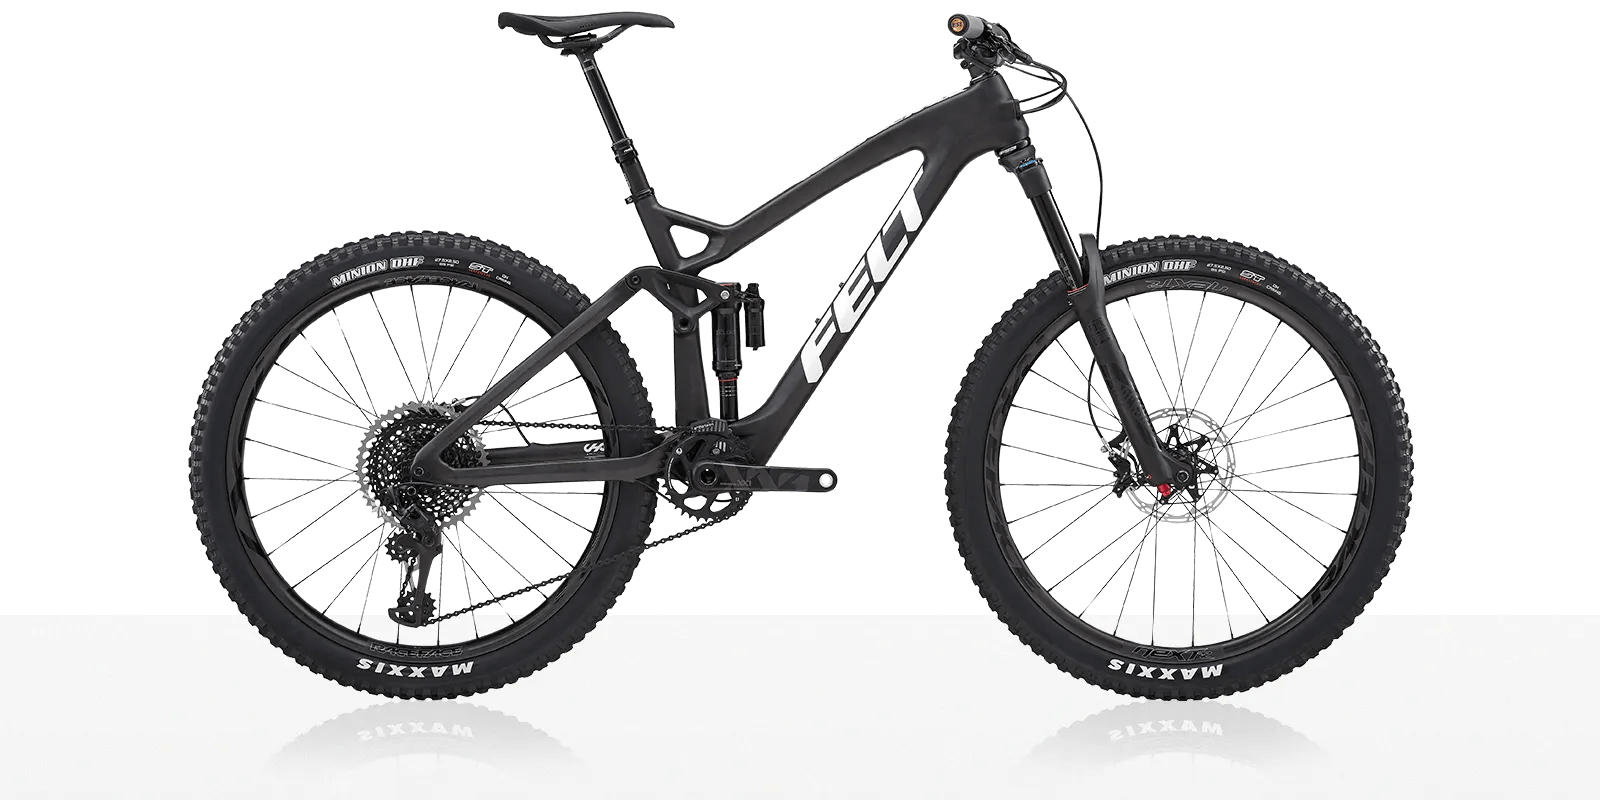 Fahrrad Xxs Felt Bicycles Decree Mtb Trail Bikes Made For Rugged Fun